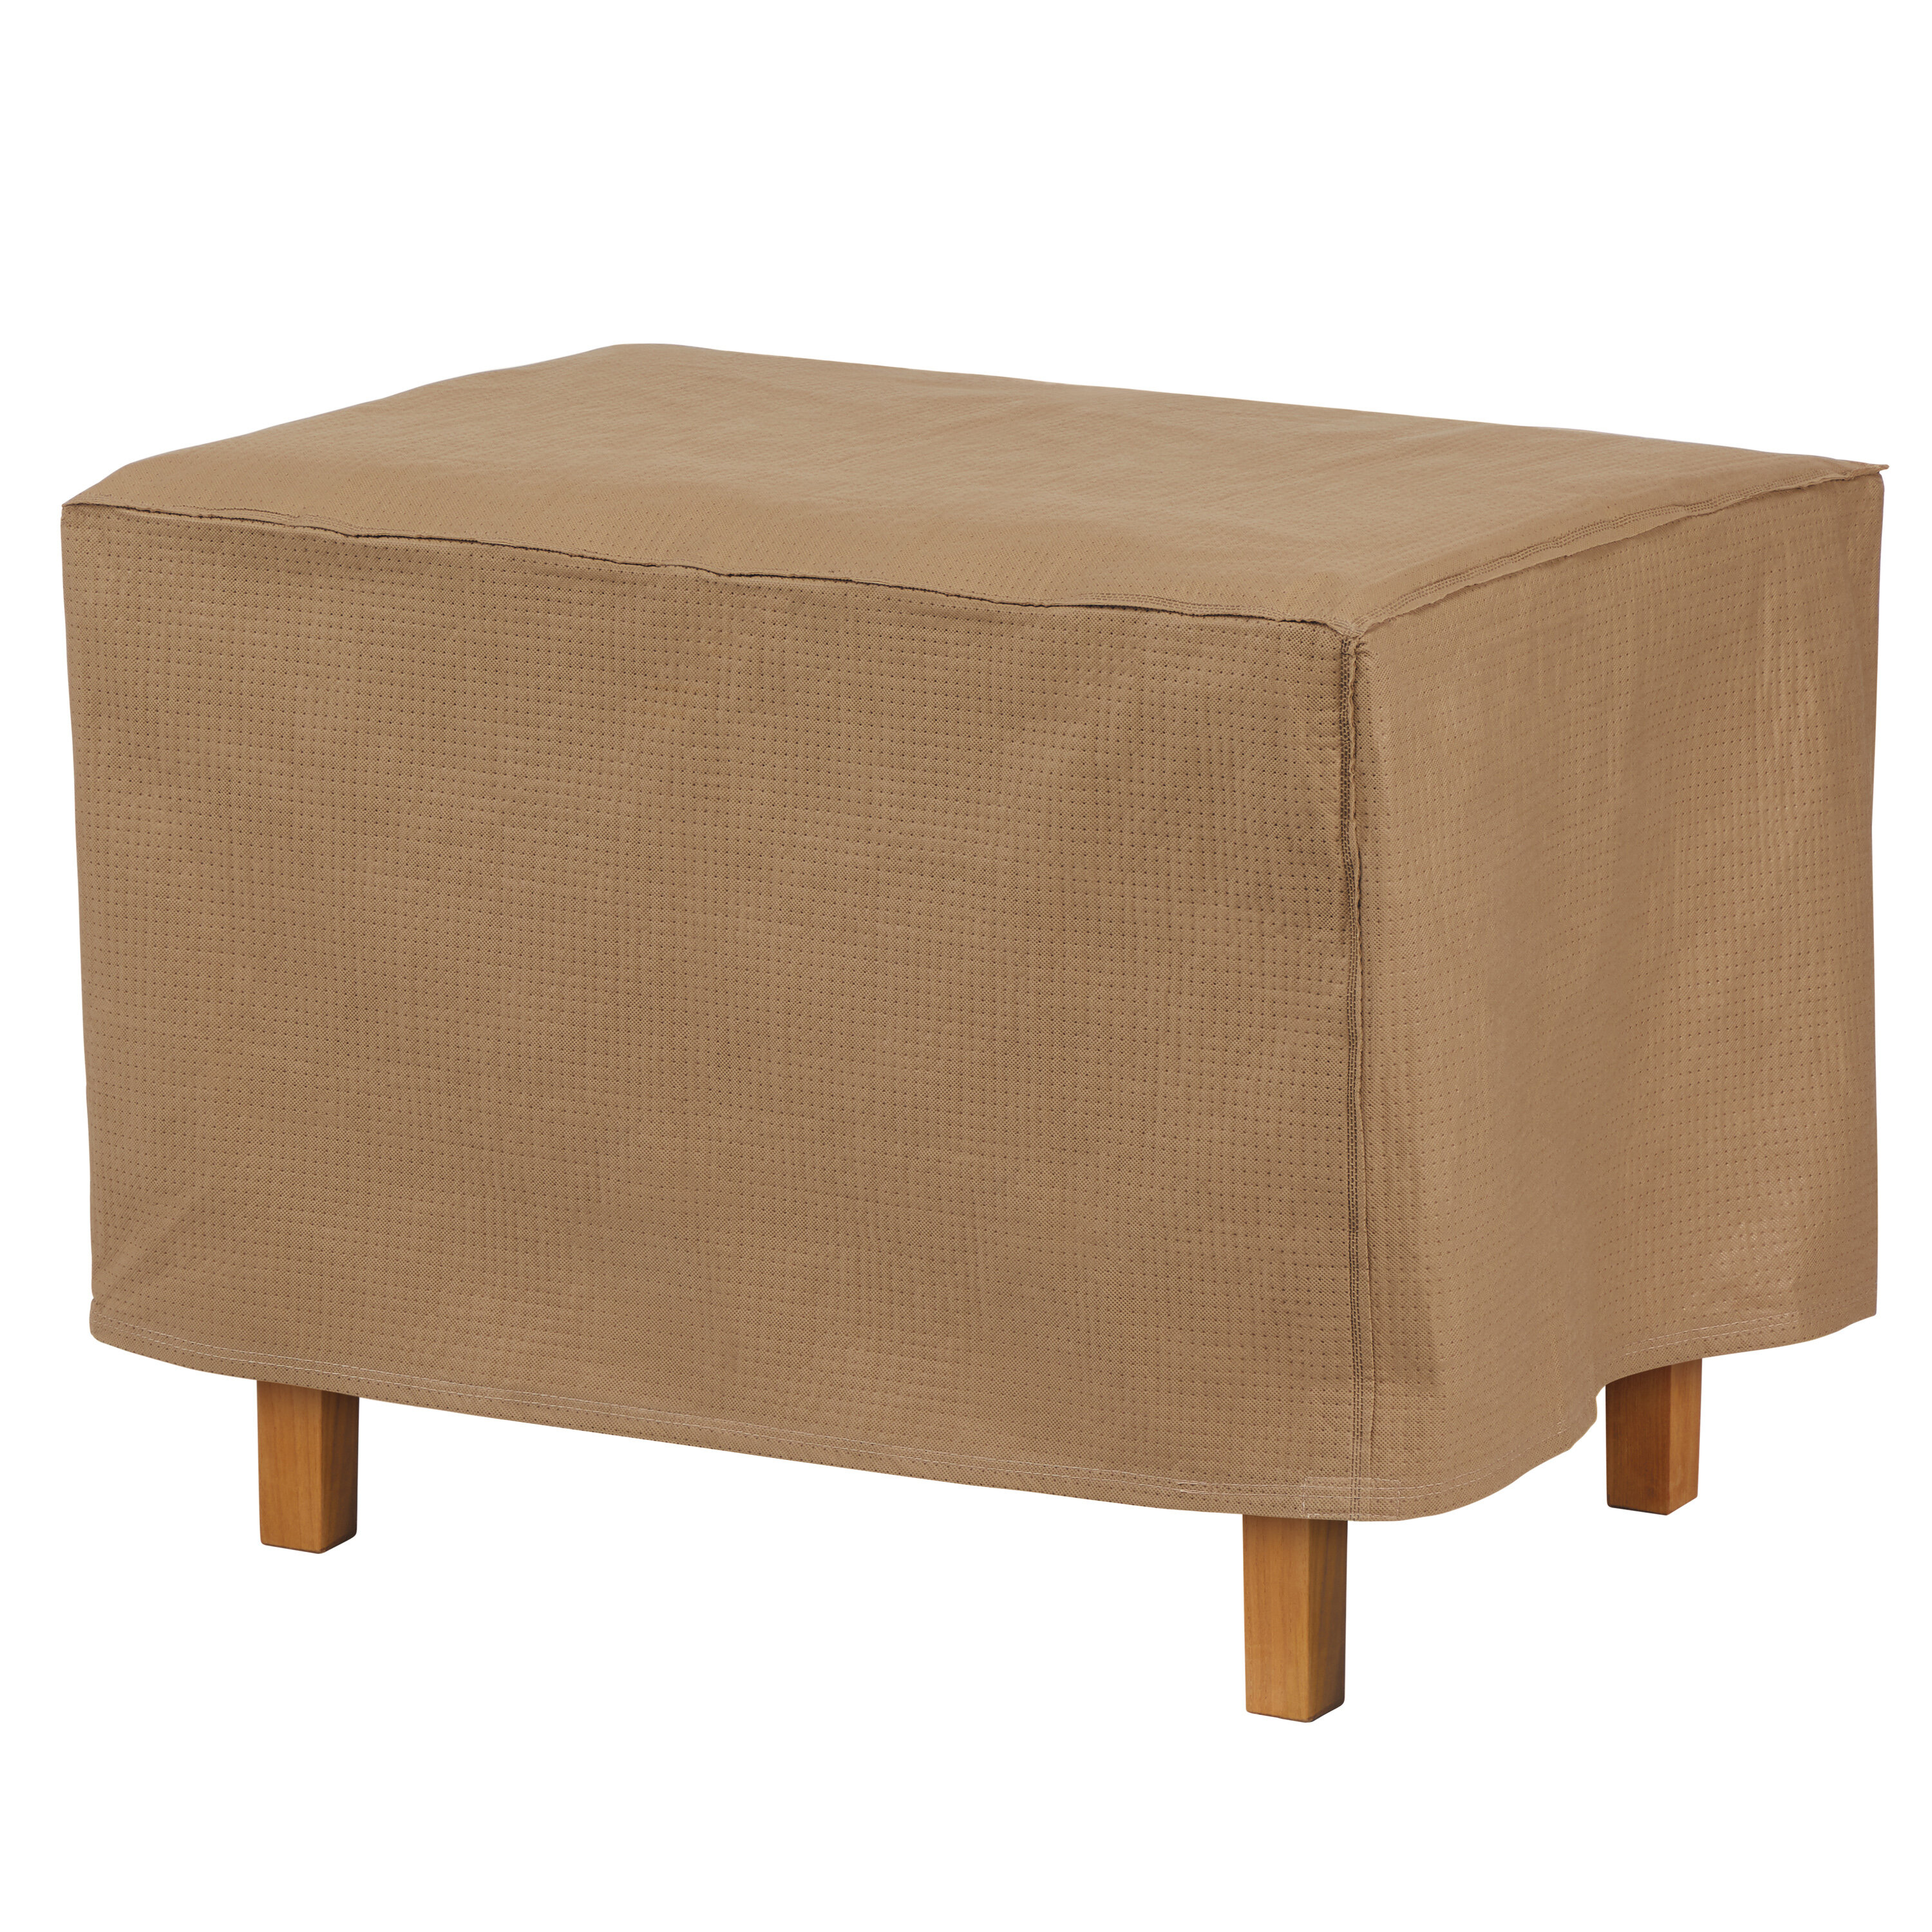 Fabulous Rectangle Patio Ottoman Or Side Table Cover Download Free Architecture Designs Scobabritishbridgeorg